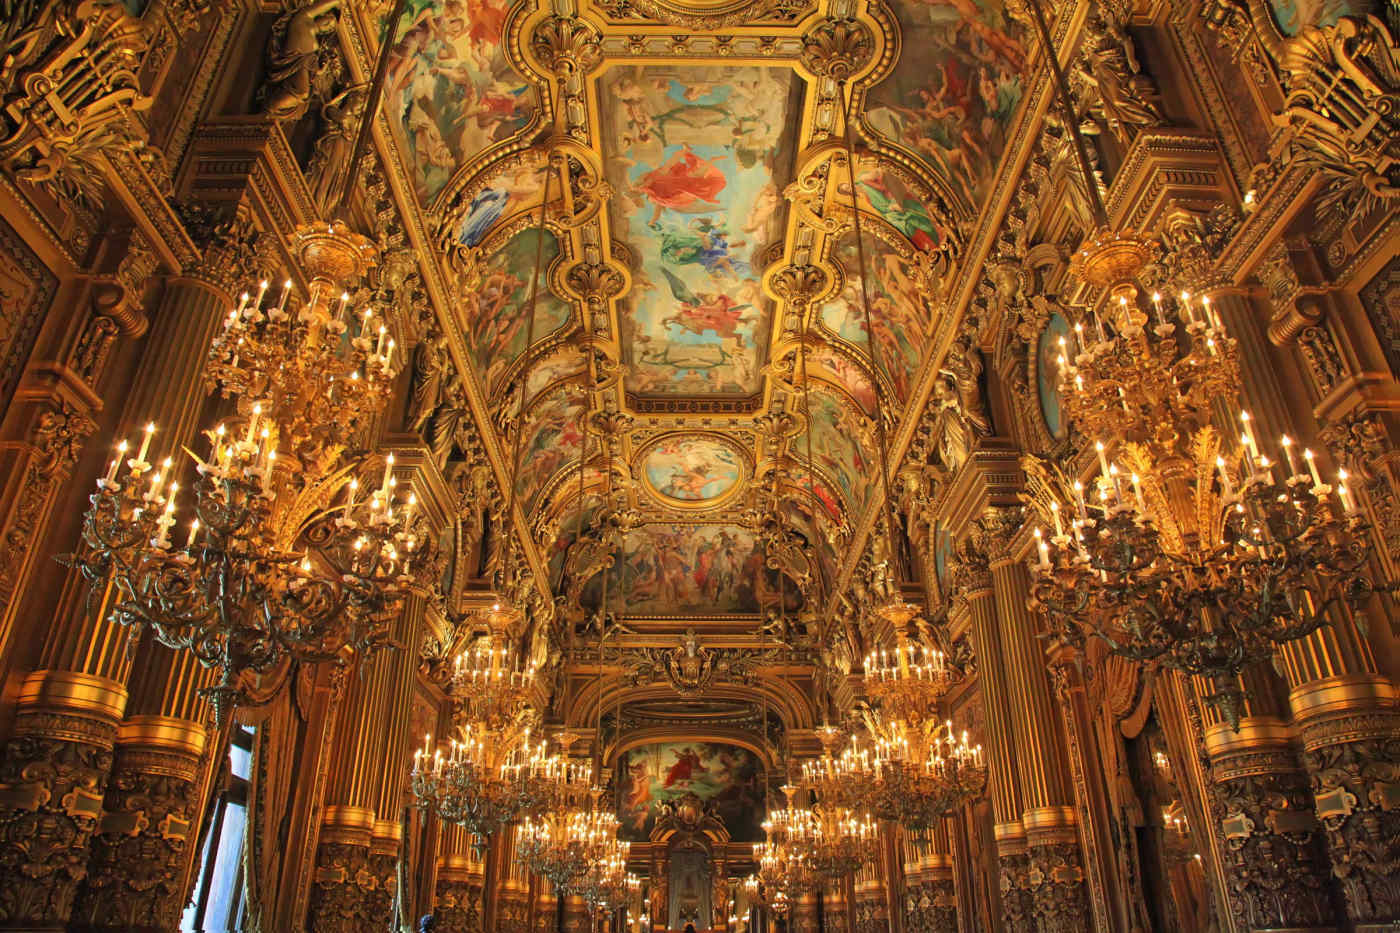 Grand Foyer at the Paris Opera in Paris, France